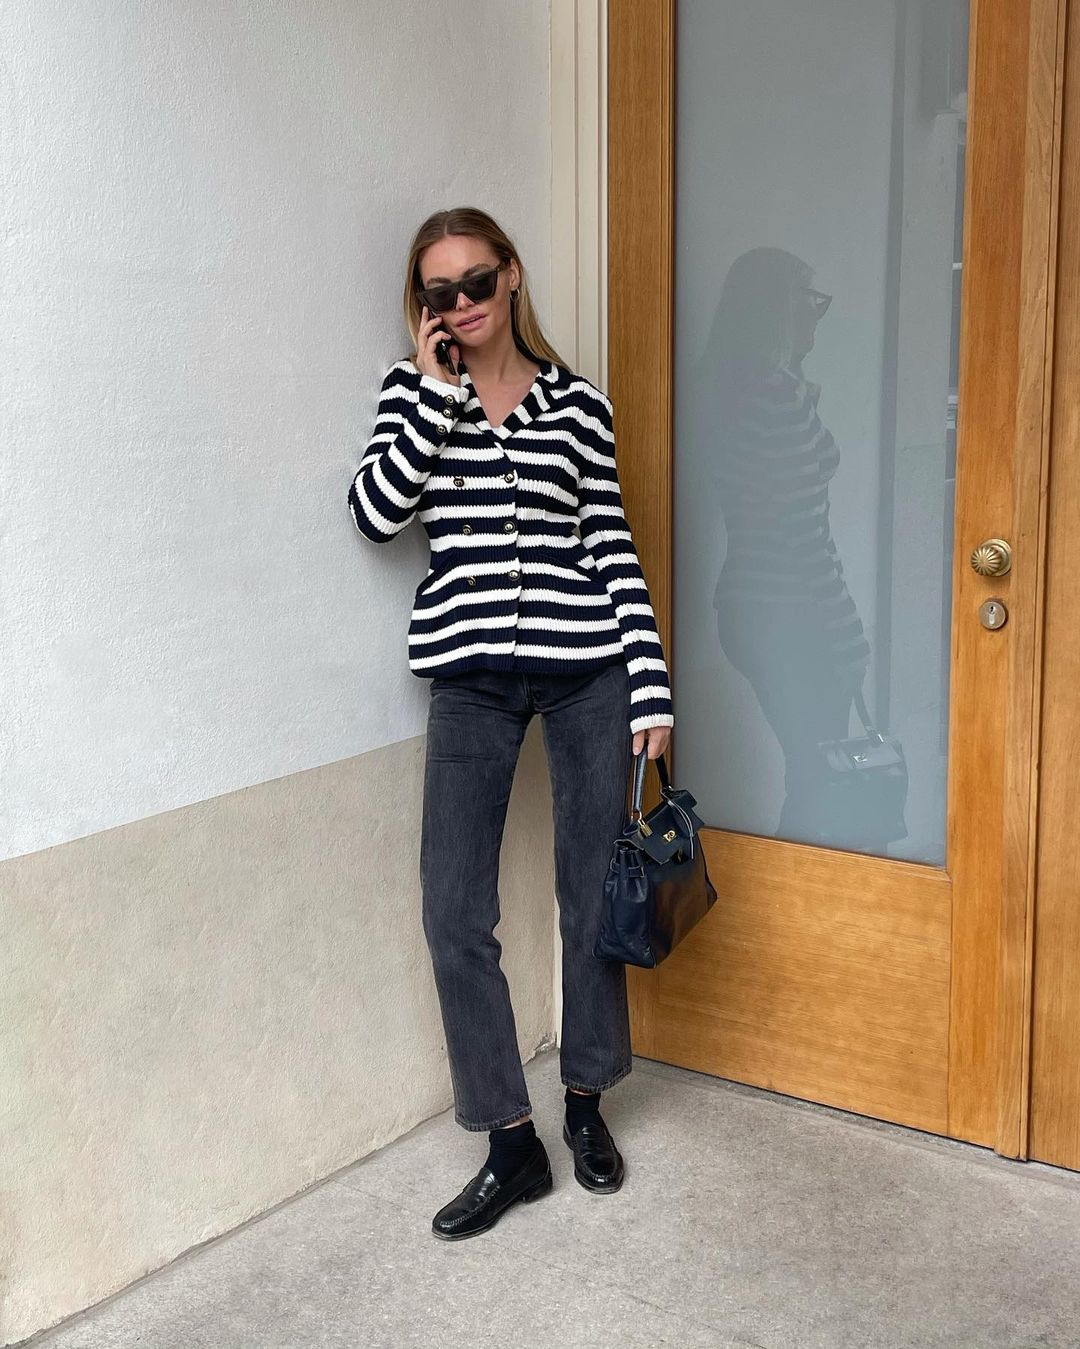 claire-rose-cliteur-dior-knitted-double-breasted-bar-jacket-with-stripes-black-and-white-instagram